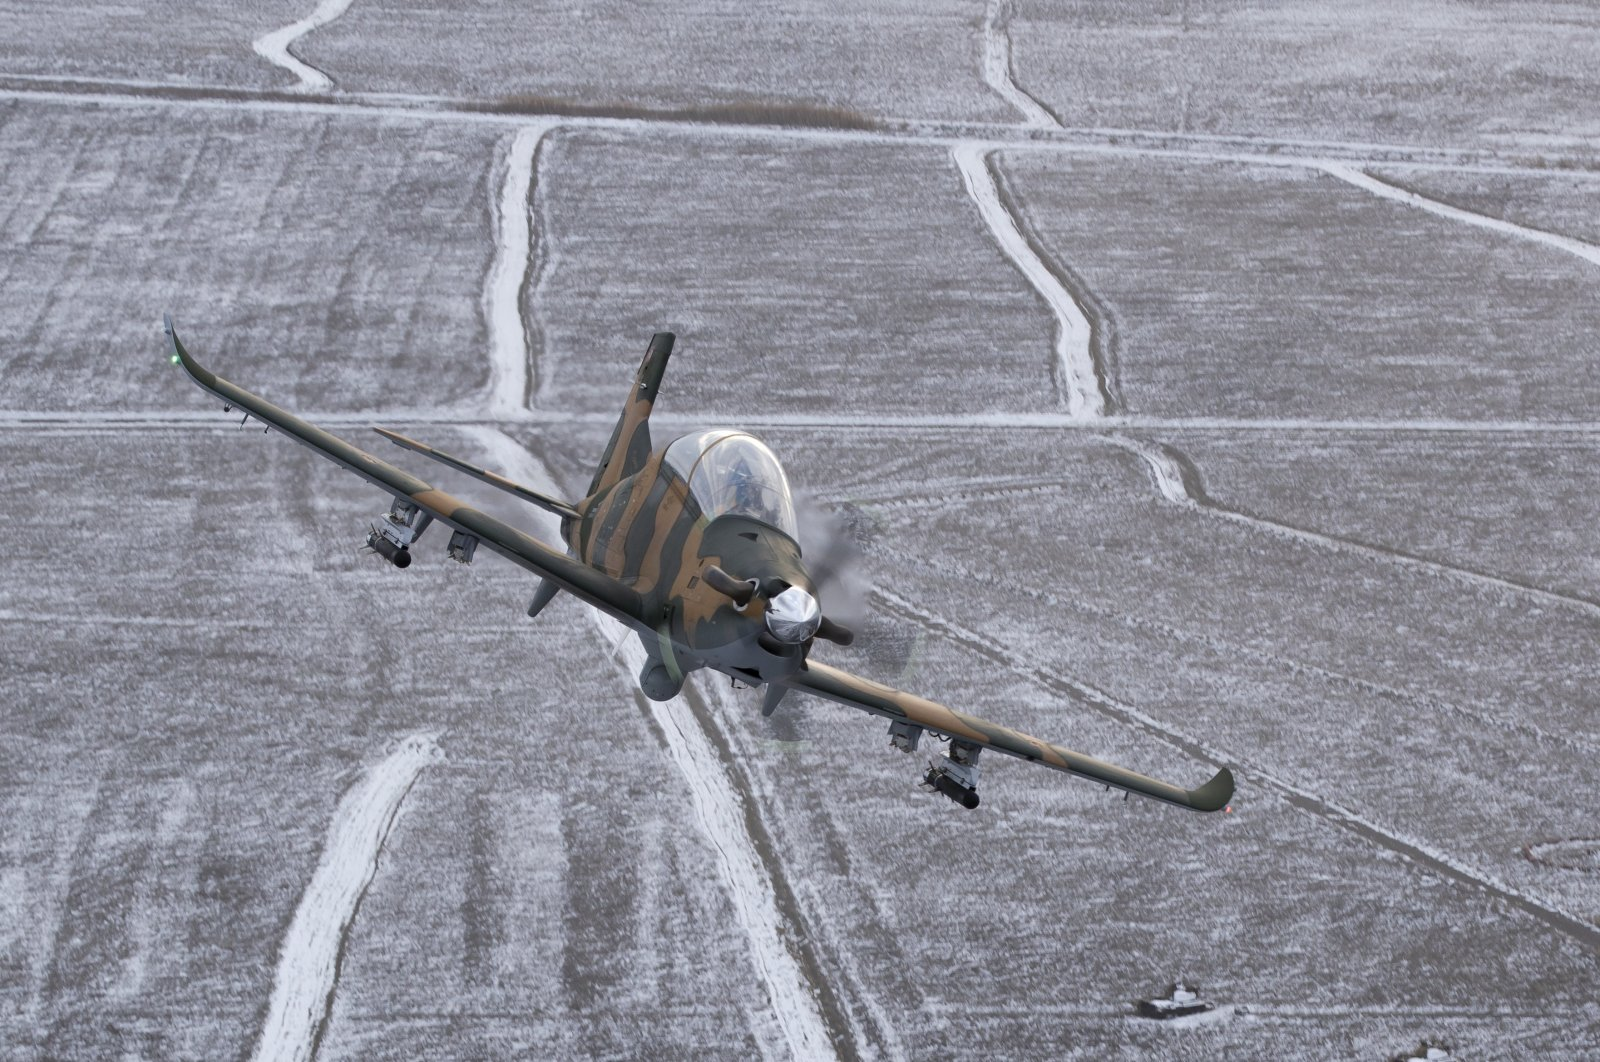 TAI's Hürkuş-C aircraft is pictured mid-flight in this file photo from Dec. 31, 2018. (Courtesy of the Presidency of Defense Industries)